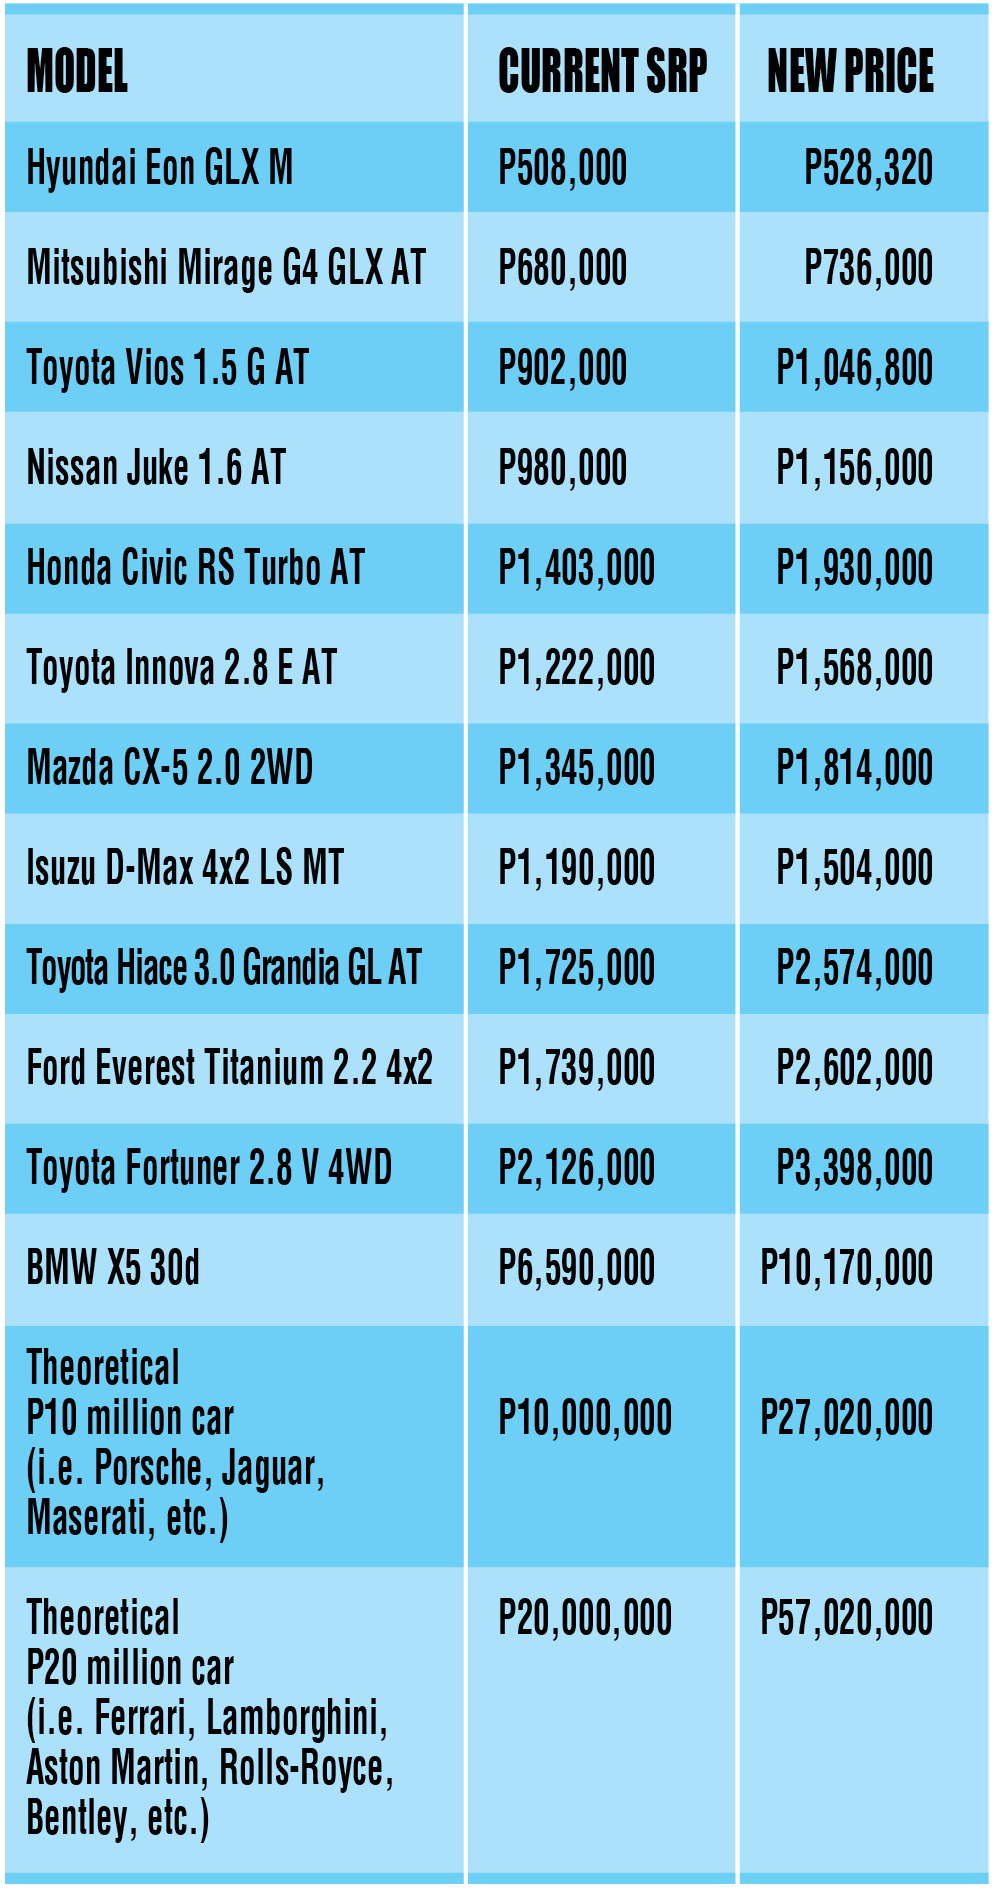 Prize of honda motorcycles philippines - Vehicles Priced From P1 1 Million To P2 1 Million Would Be Taxed At P224 000 Up From P112 000 Plus 100 Percent Up From 40 Percent Of The Amount In